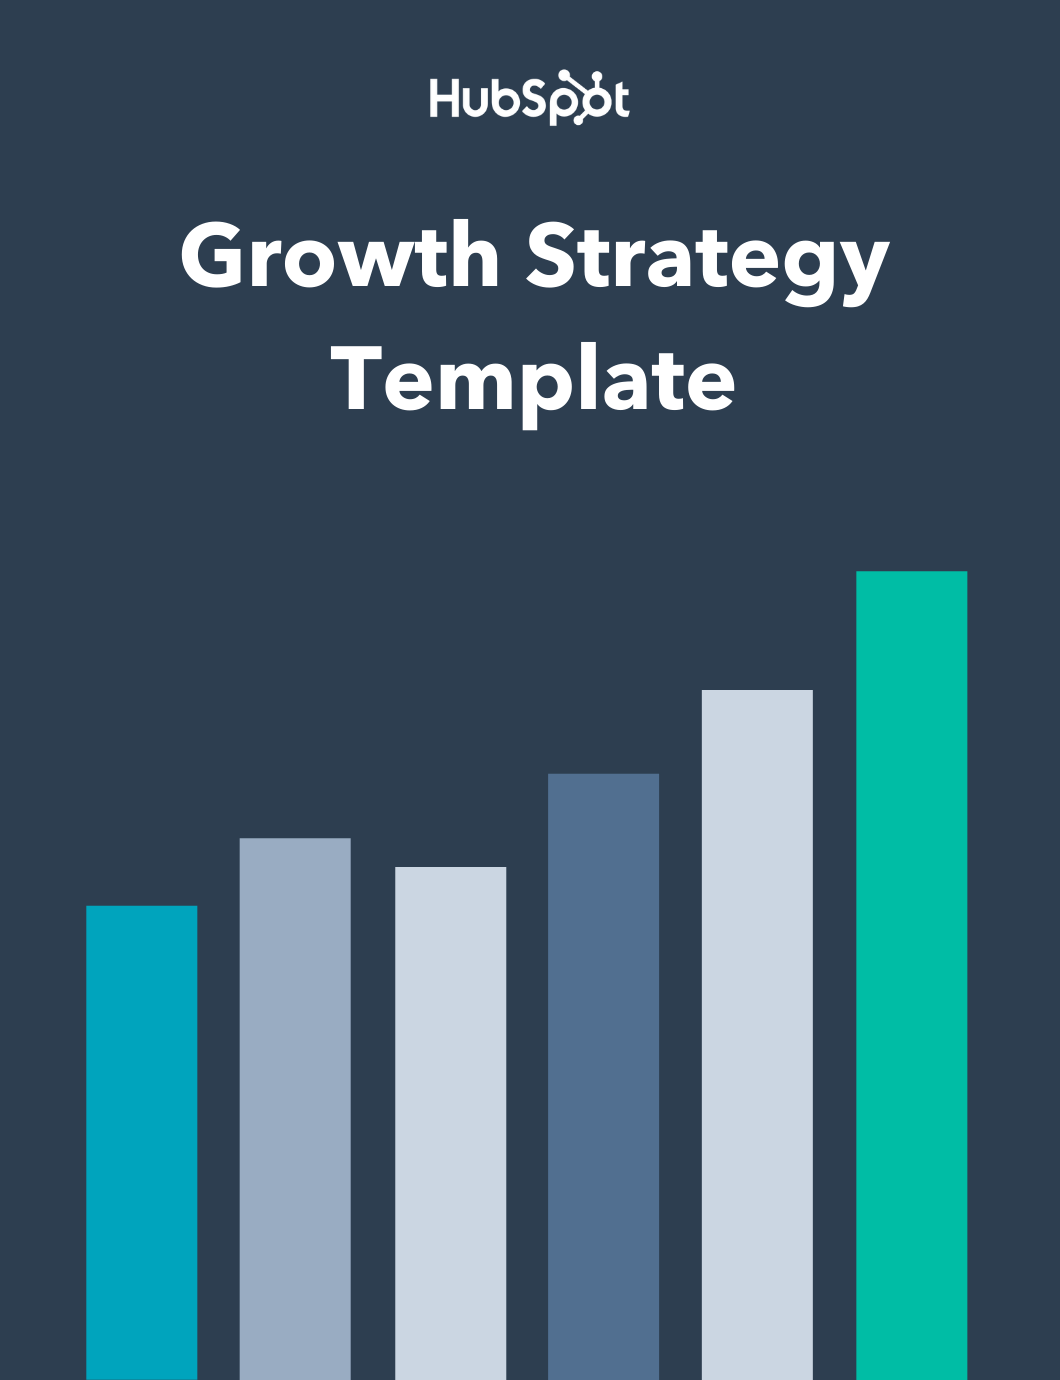 Growth Strategy Template (4)